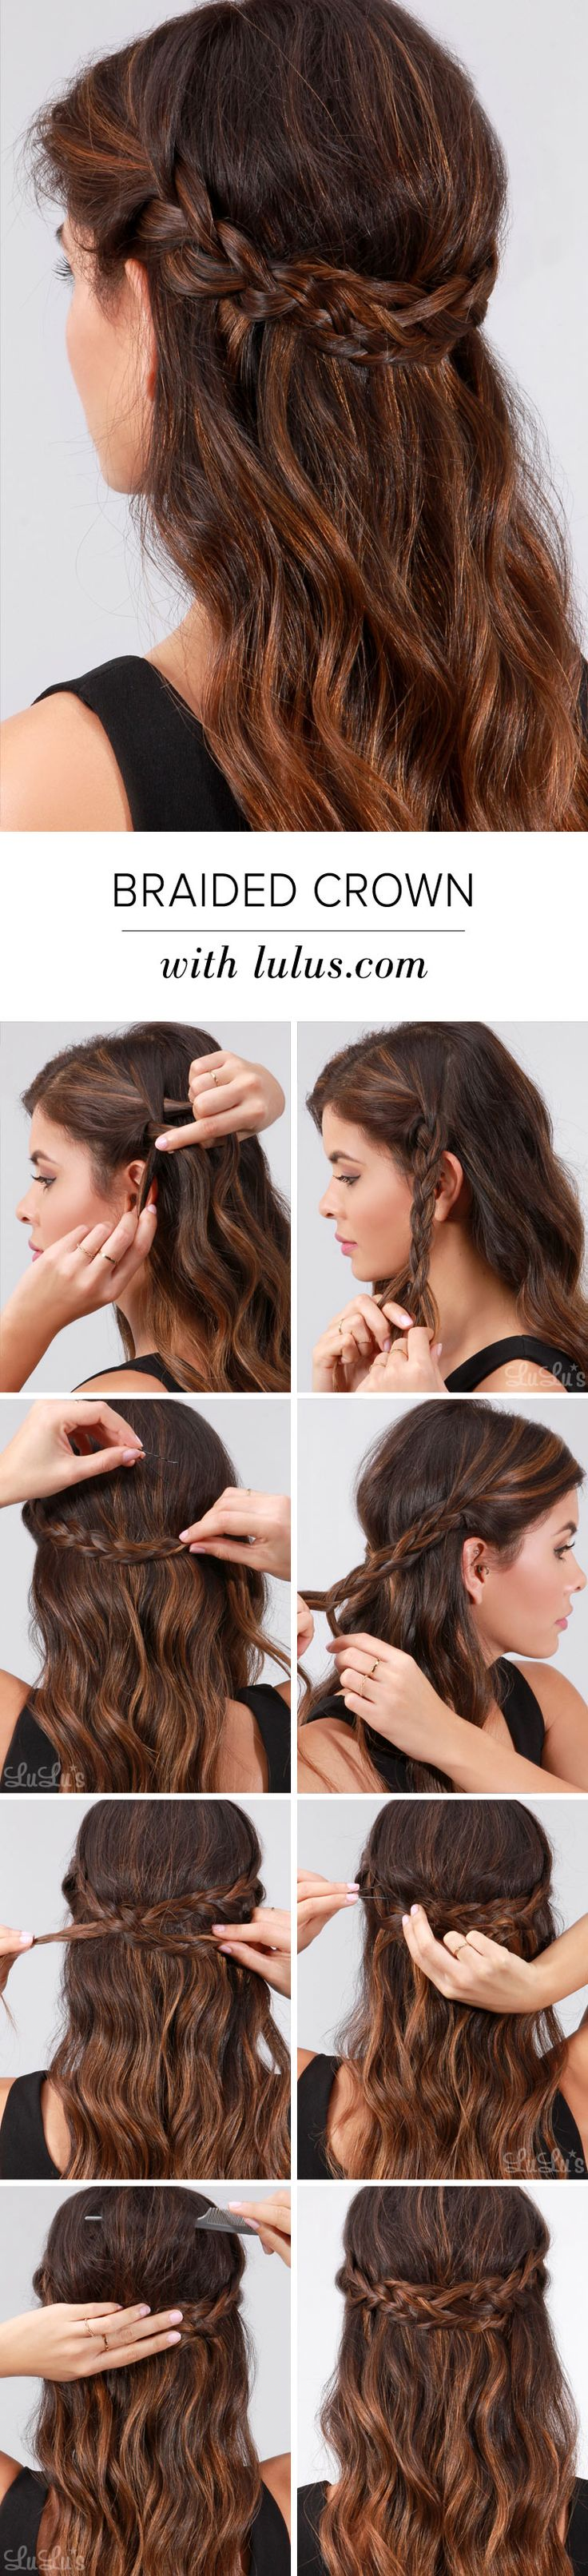 793 best Hair Tutorials images on Pinterest